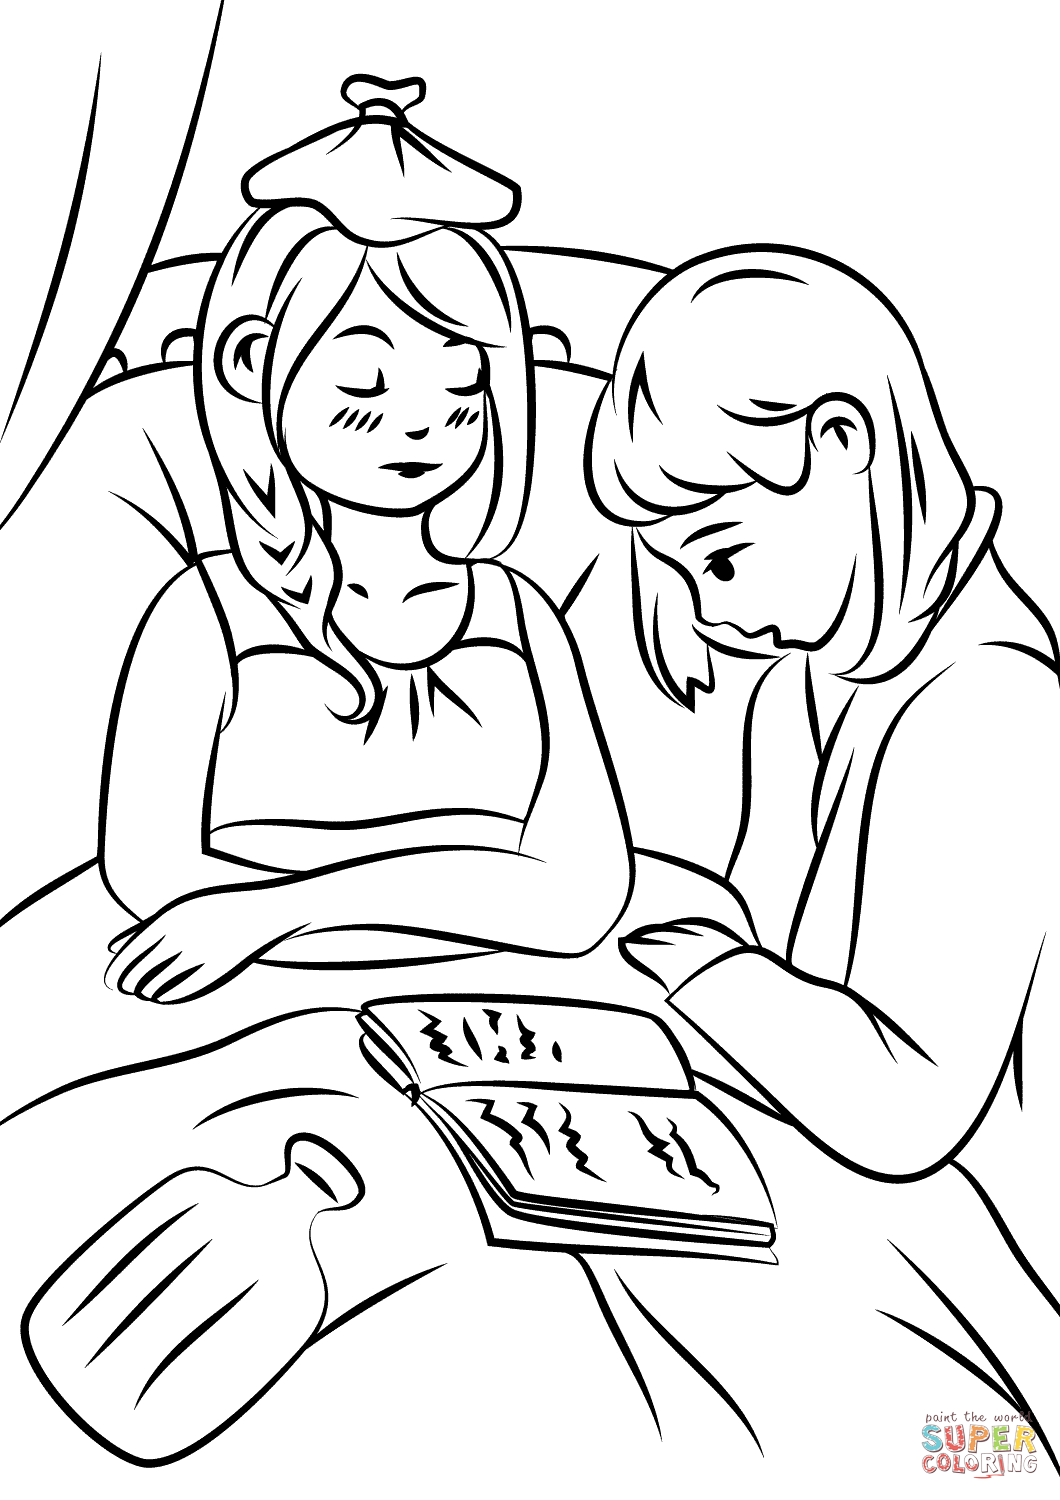 Helping The Sick Coloring Page